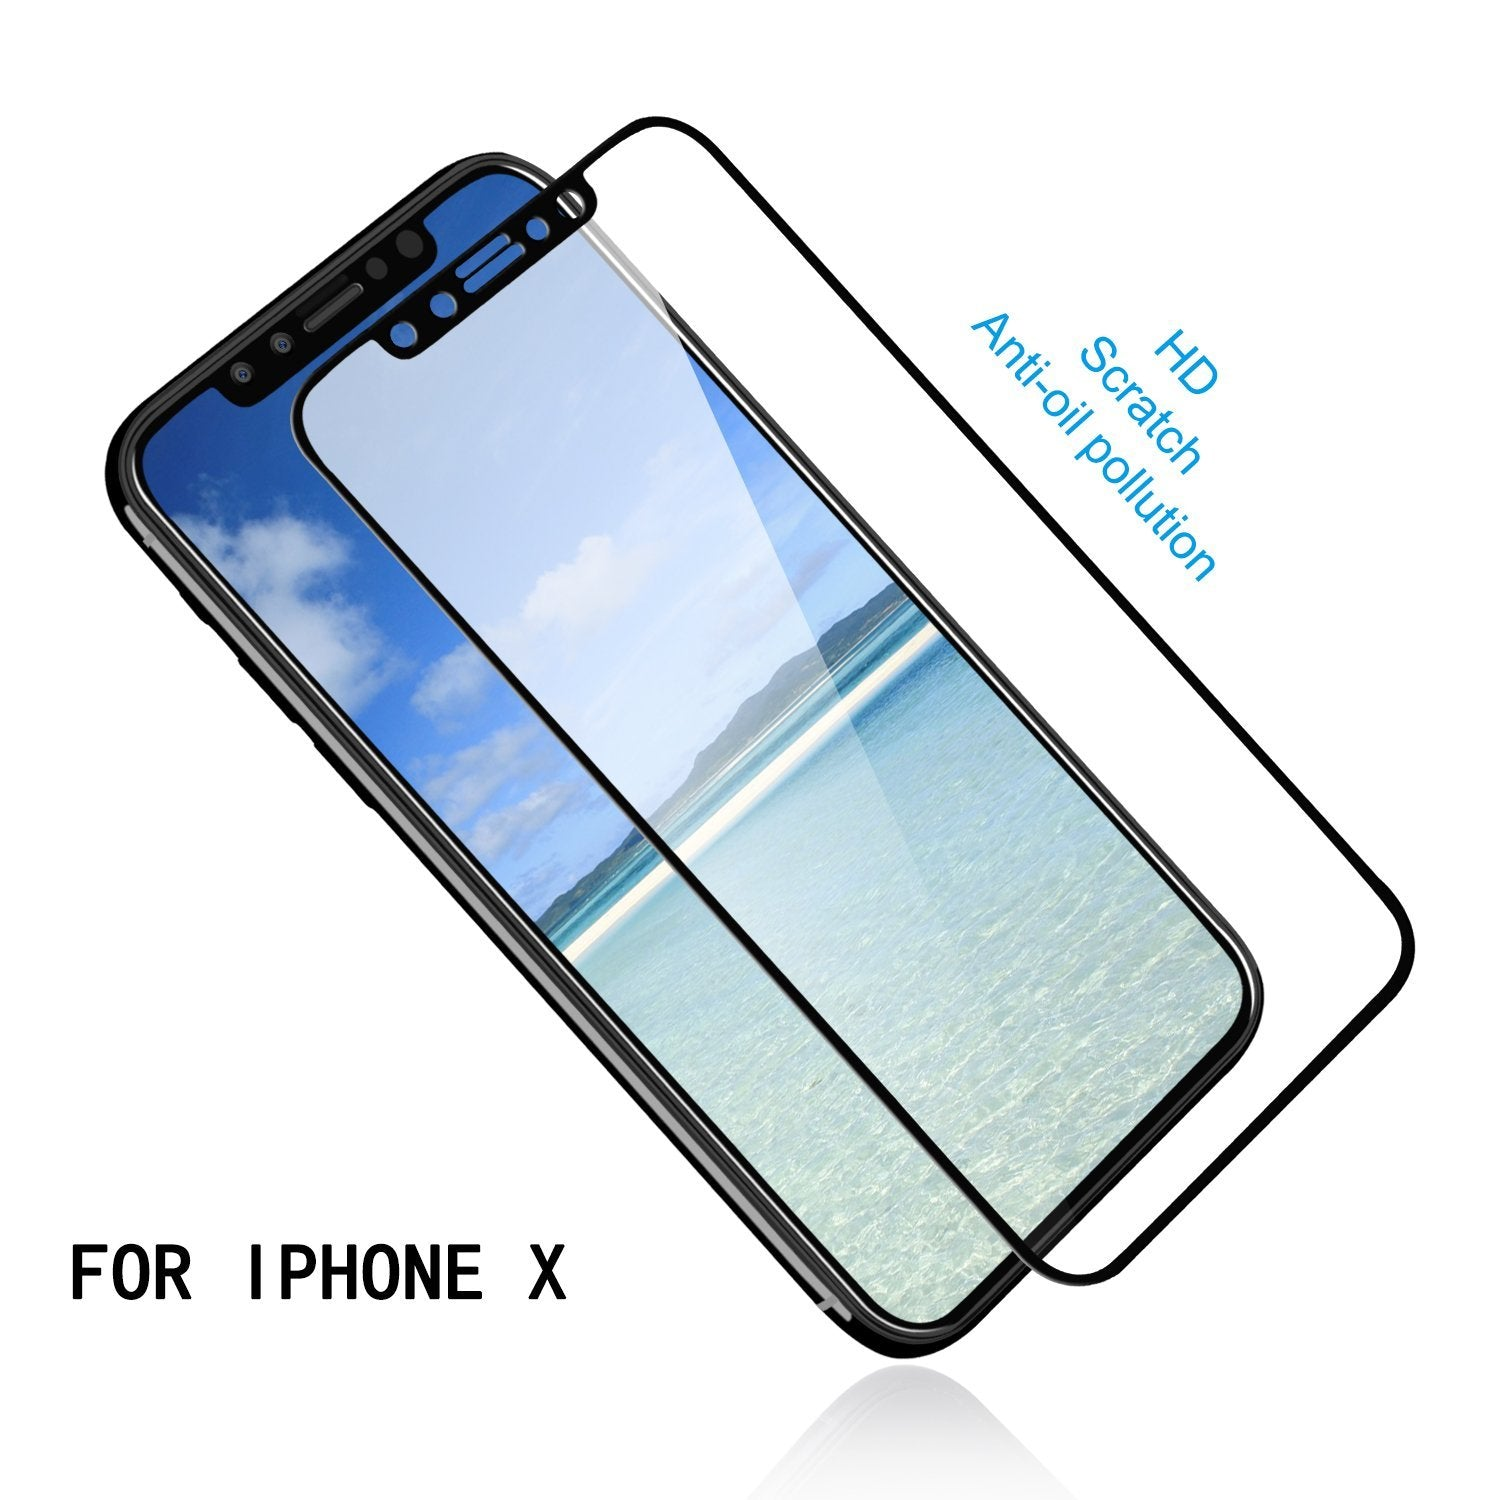 MAXSHILD 5D Full Coverage Glass Screen Protector For Apple iPhone 8 (Black)